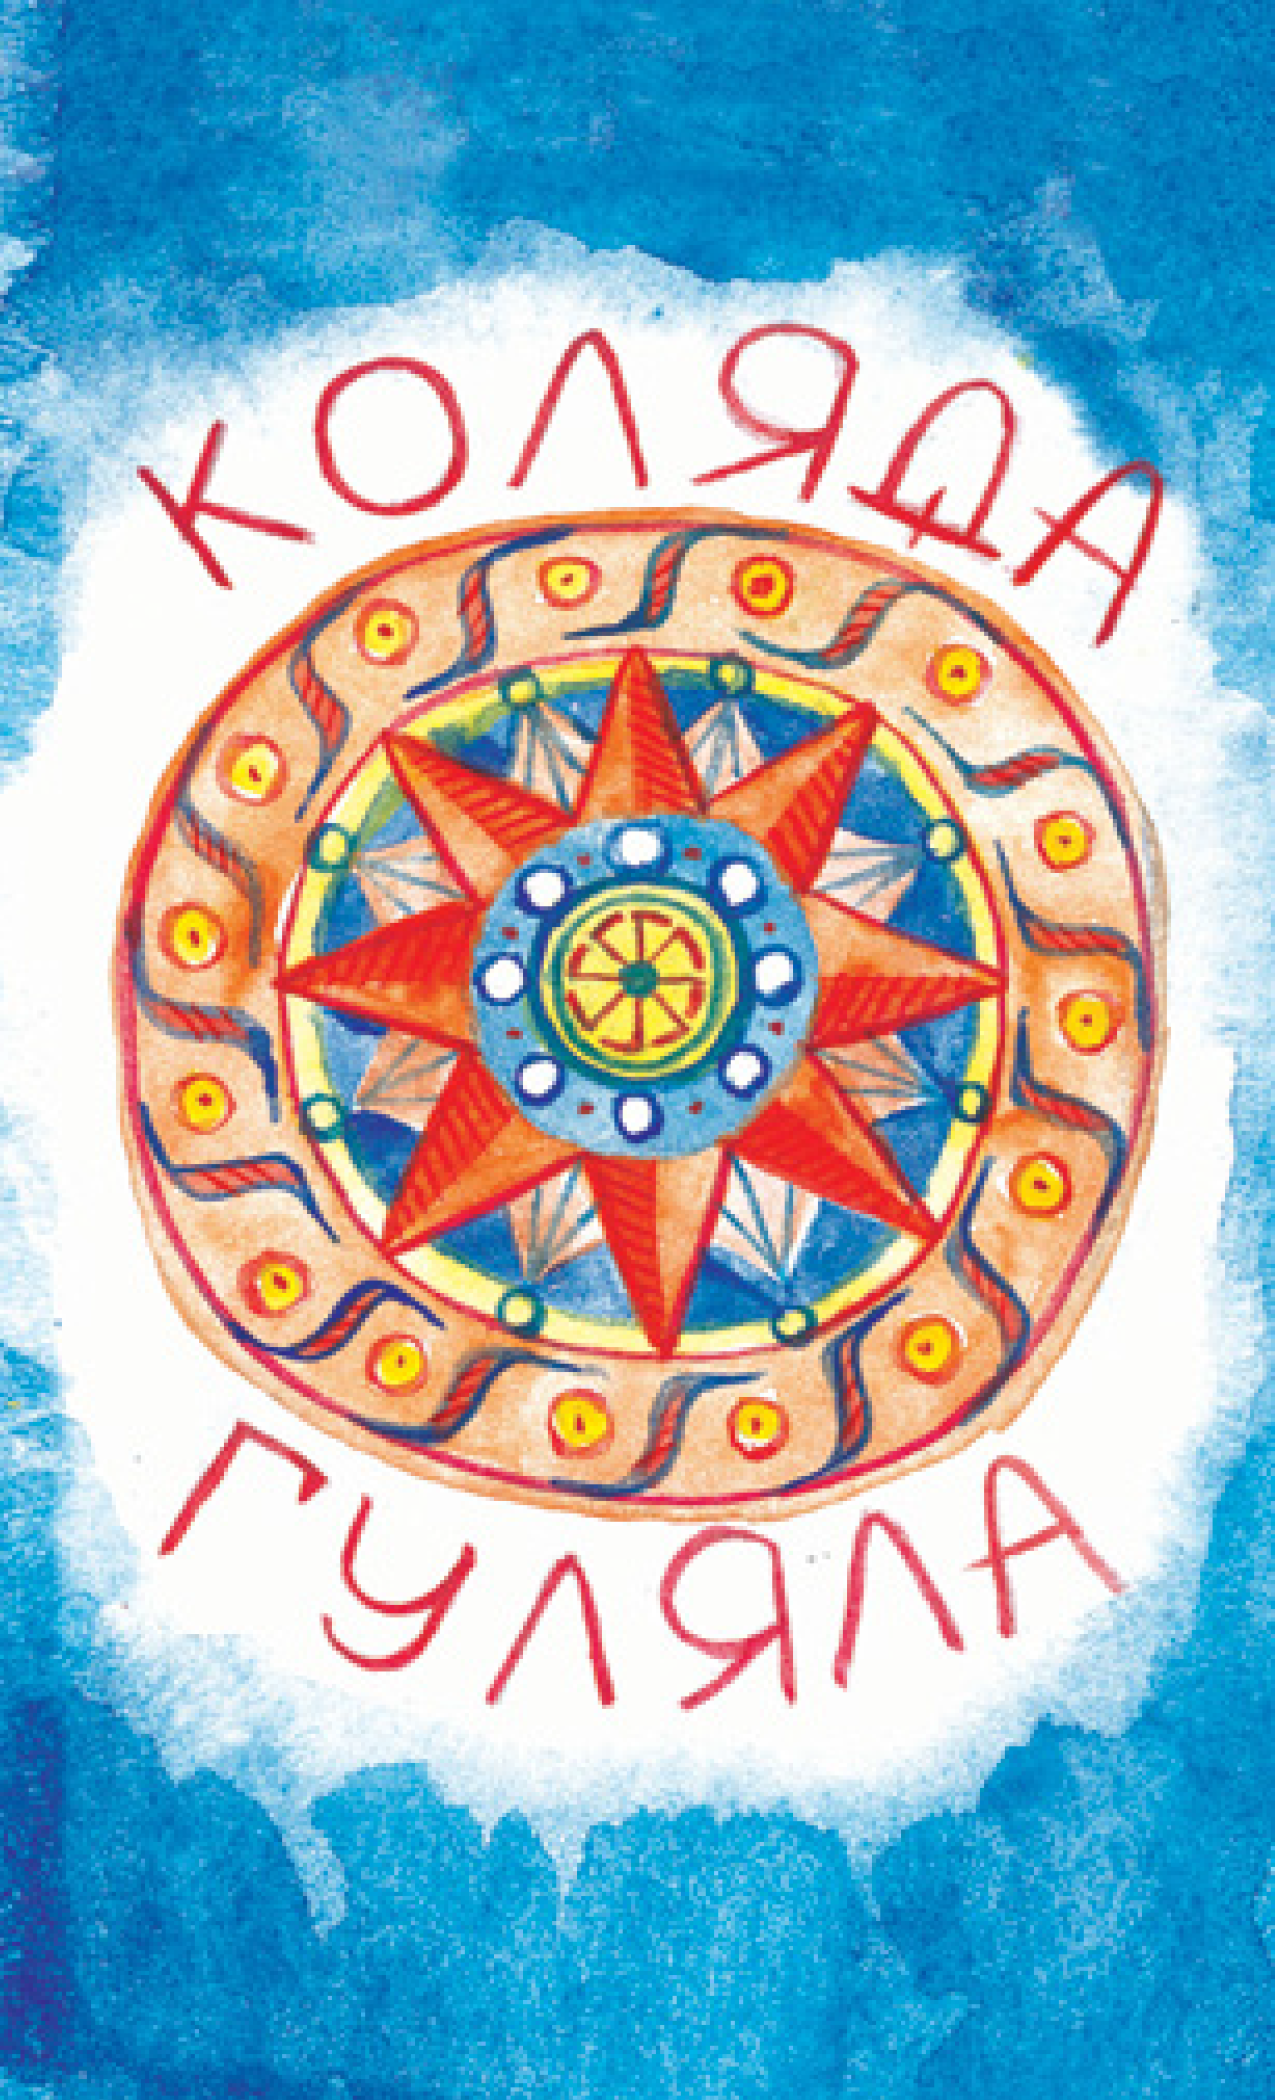 KOLIADA HULIALA - In 2015, Kosa Kolektiv with the Ukrainian Credit Union put together a Ukrainian carolling book with the original Ukrainian text and transliteration of each song.Click on the button for a free .PDF download.